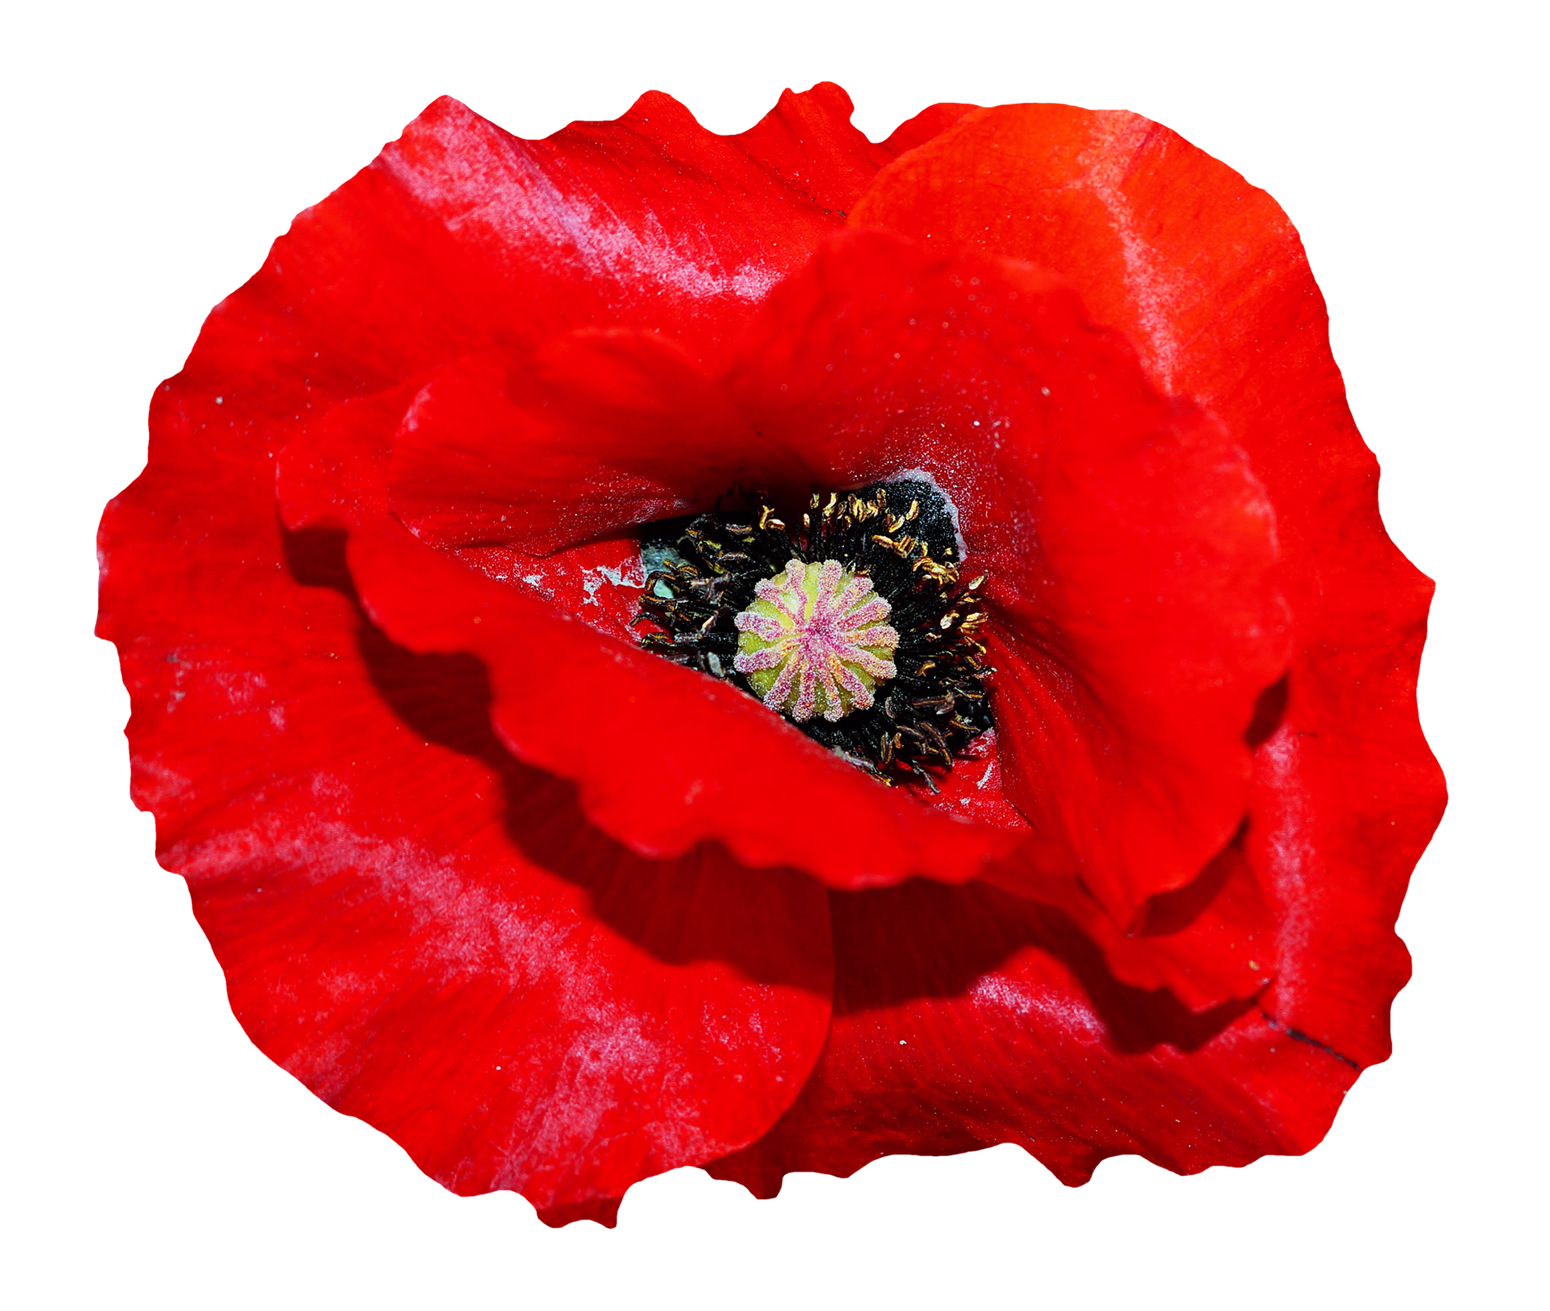 Poppy flower png image purepng free transparent cc0 png image poppy flower png image purepng free transparent cc0 png image library mightylinksfo